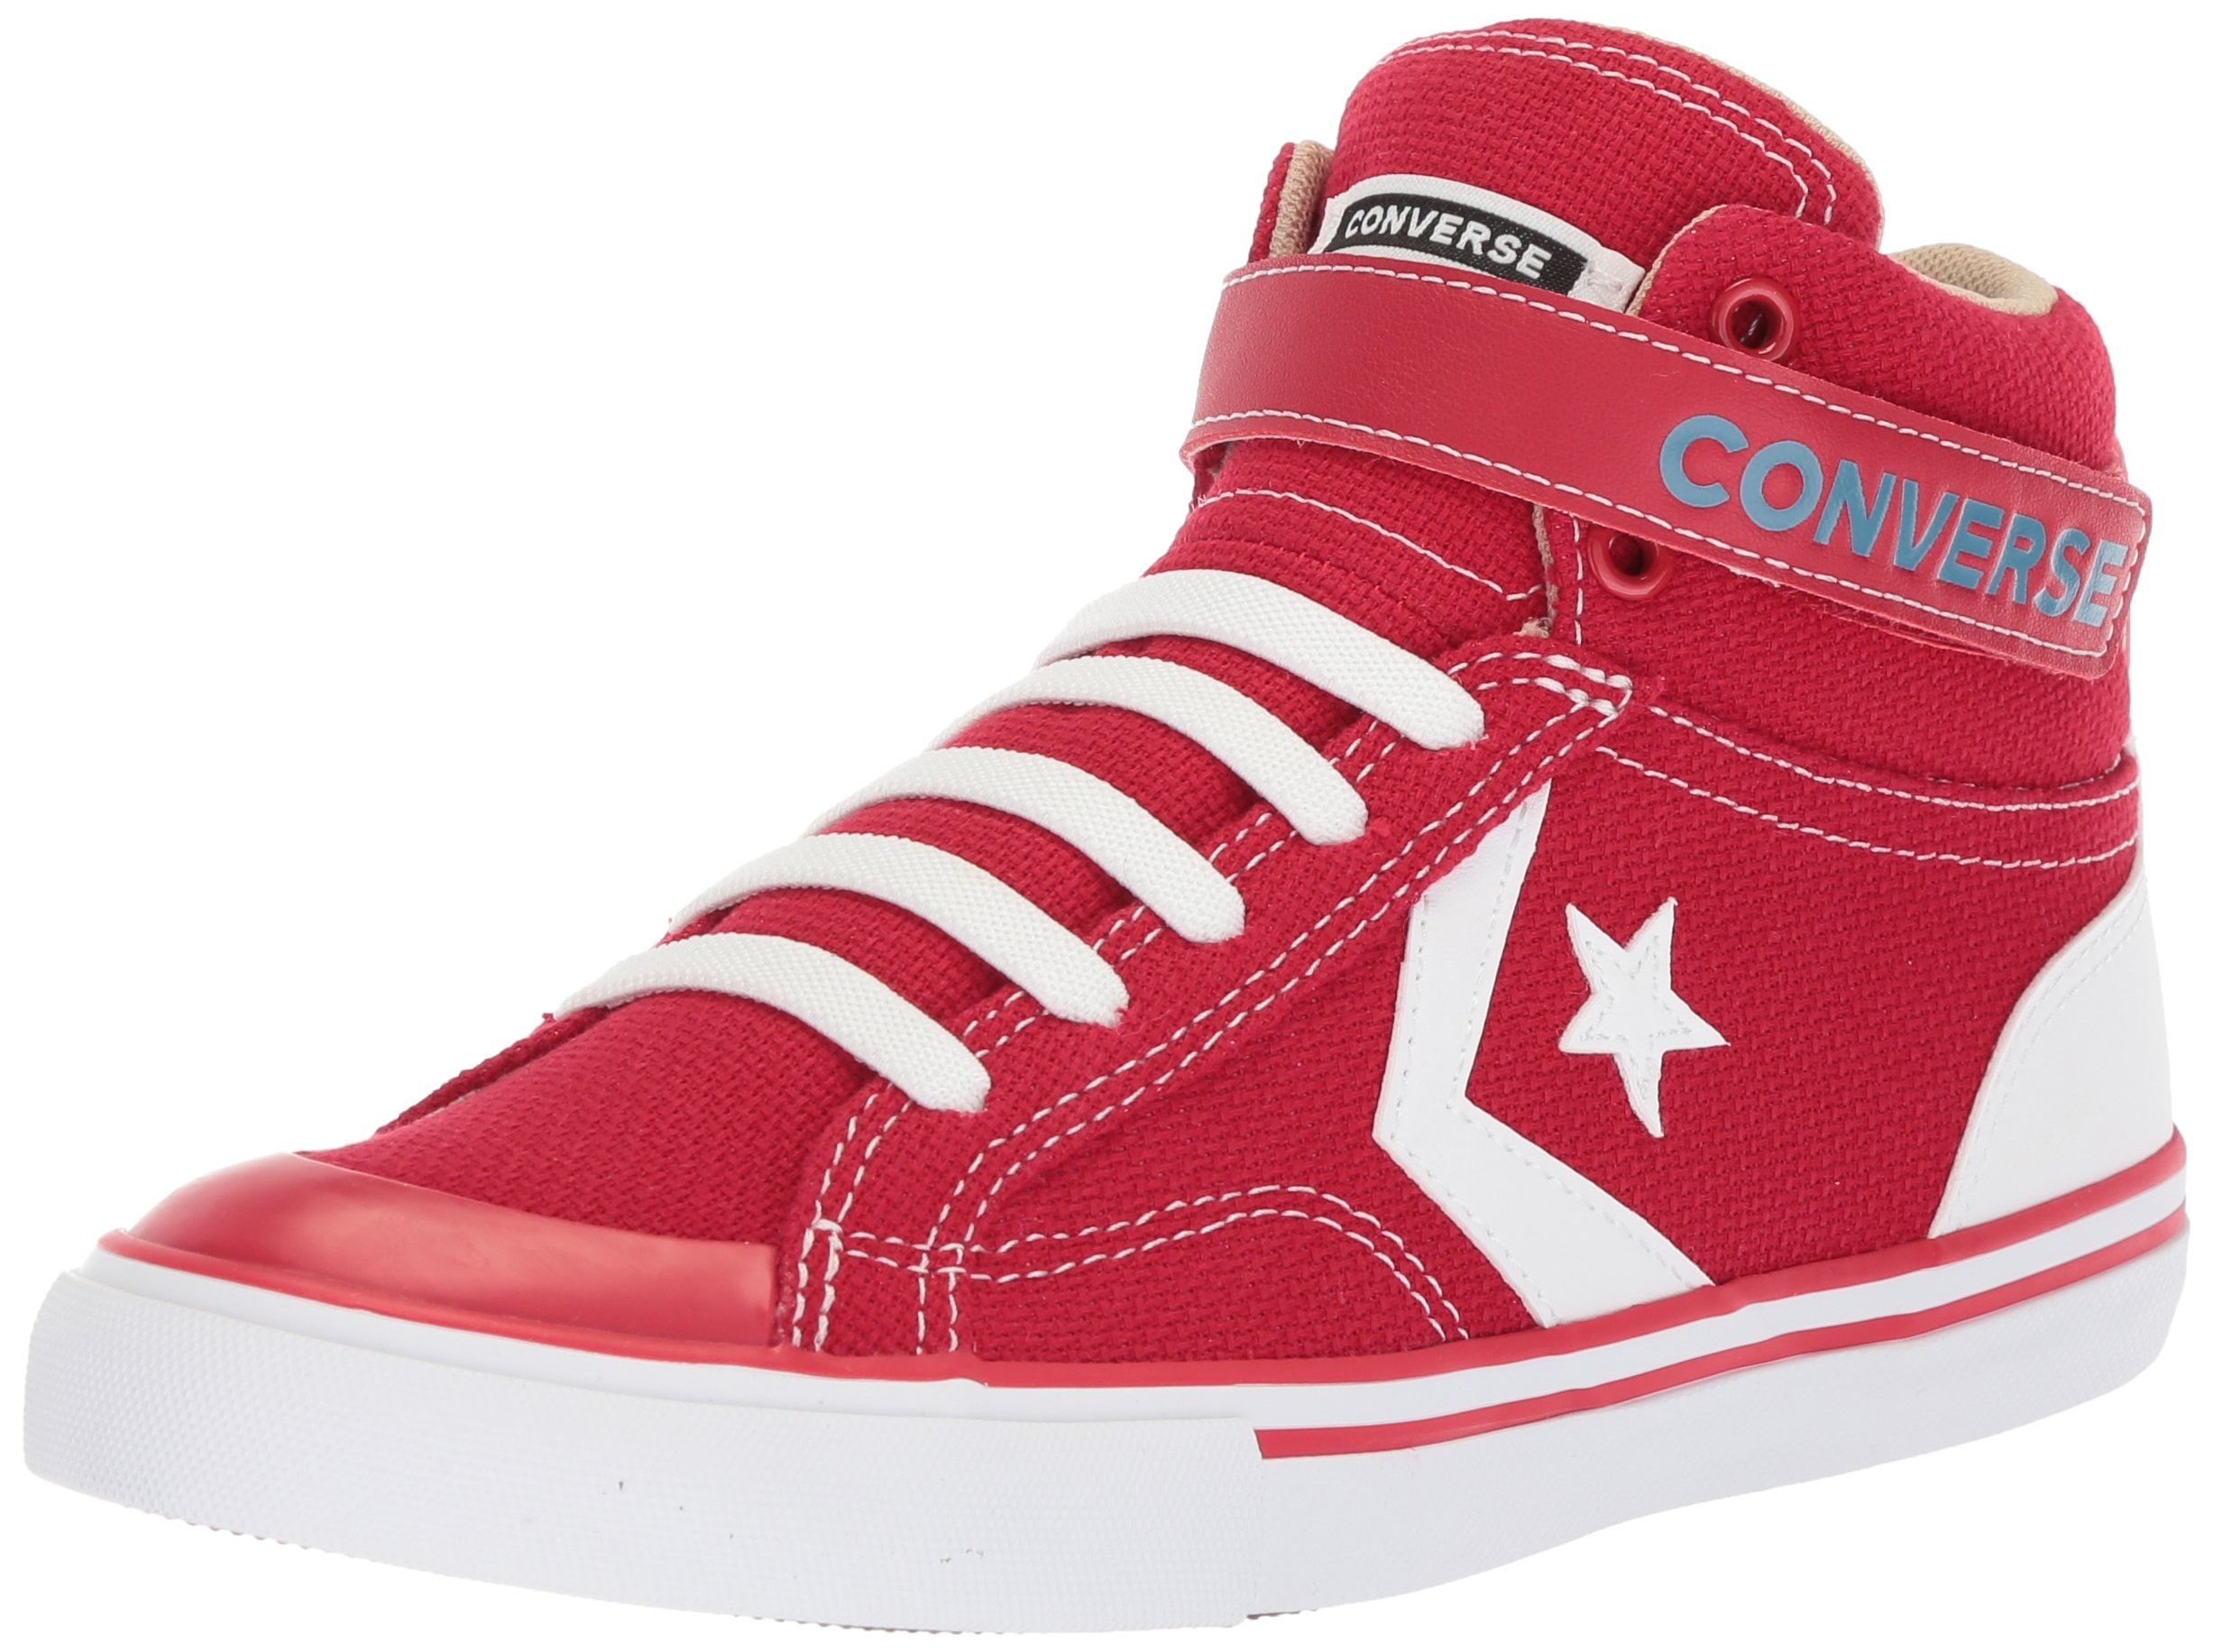 Converse Boys' Pro Blaze Summer Sport Canvas High Top Sneaker, Gym Red/Vintage Khaki/White, 6 M US Toddler